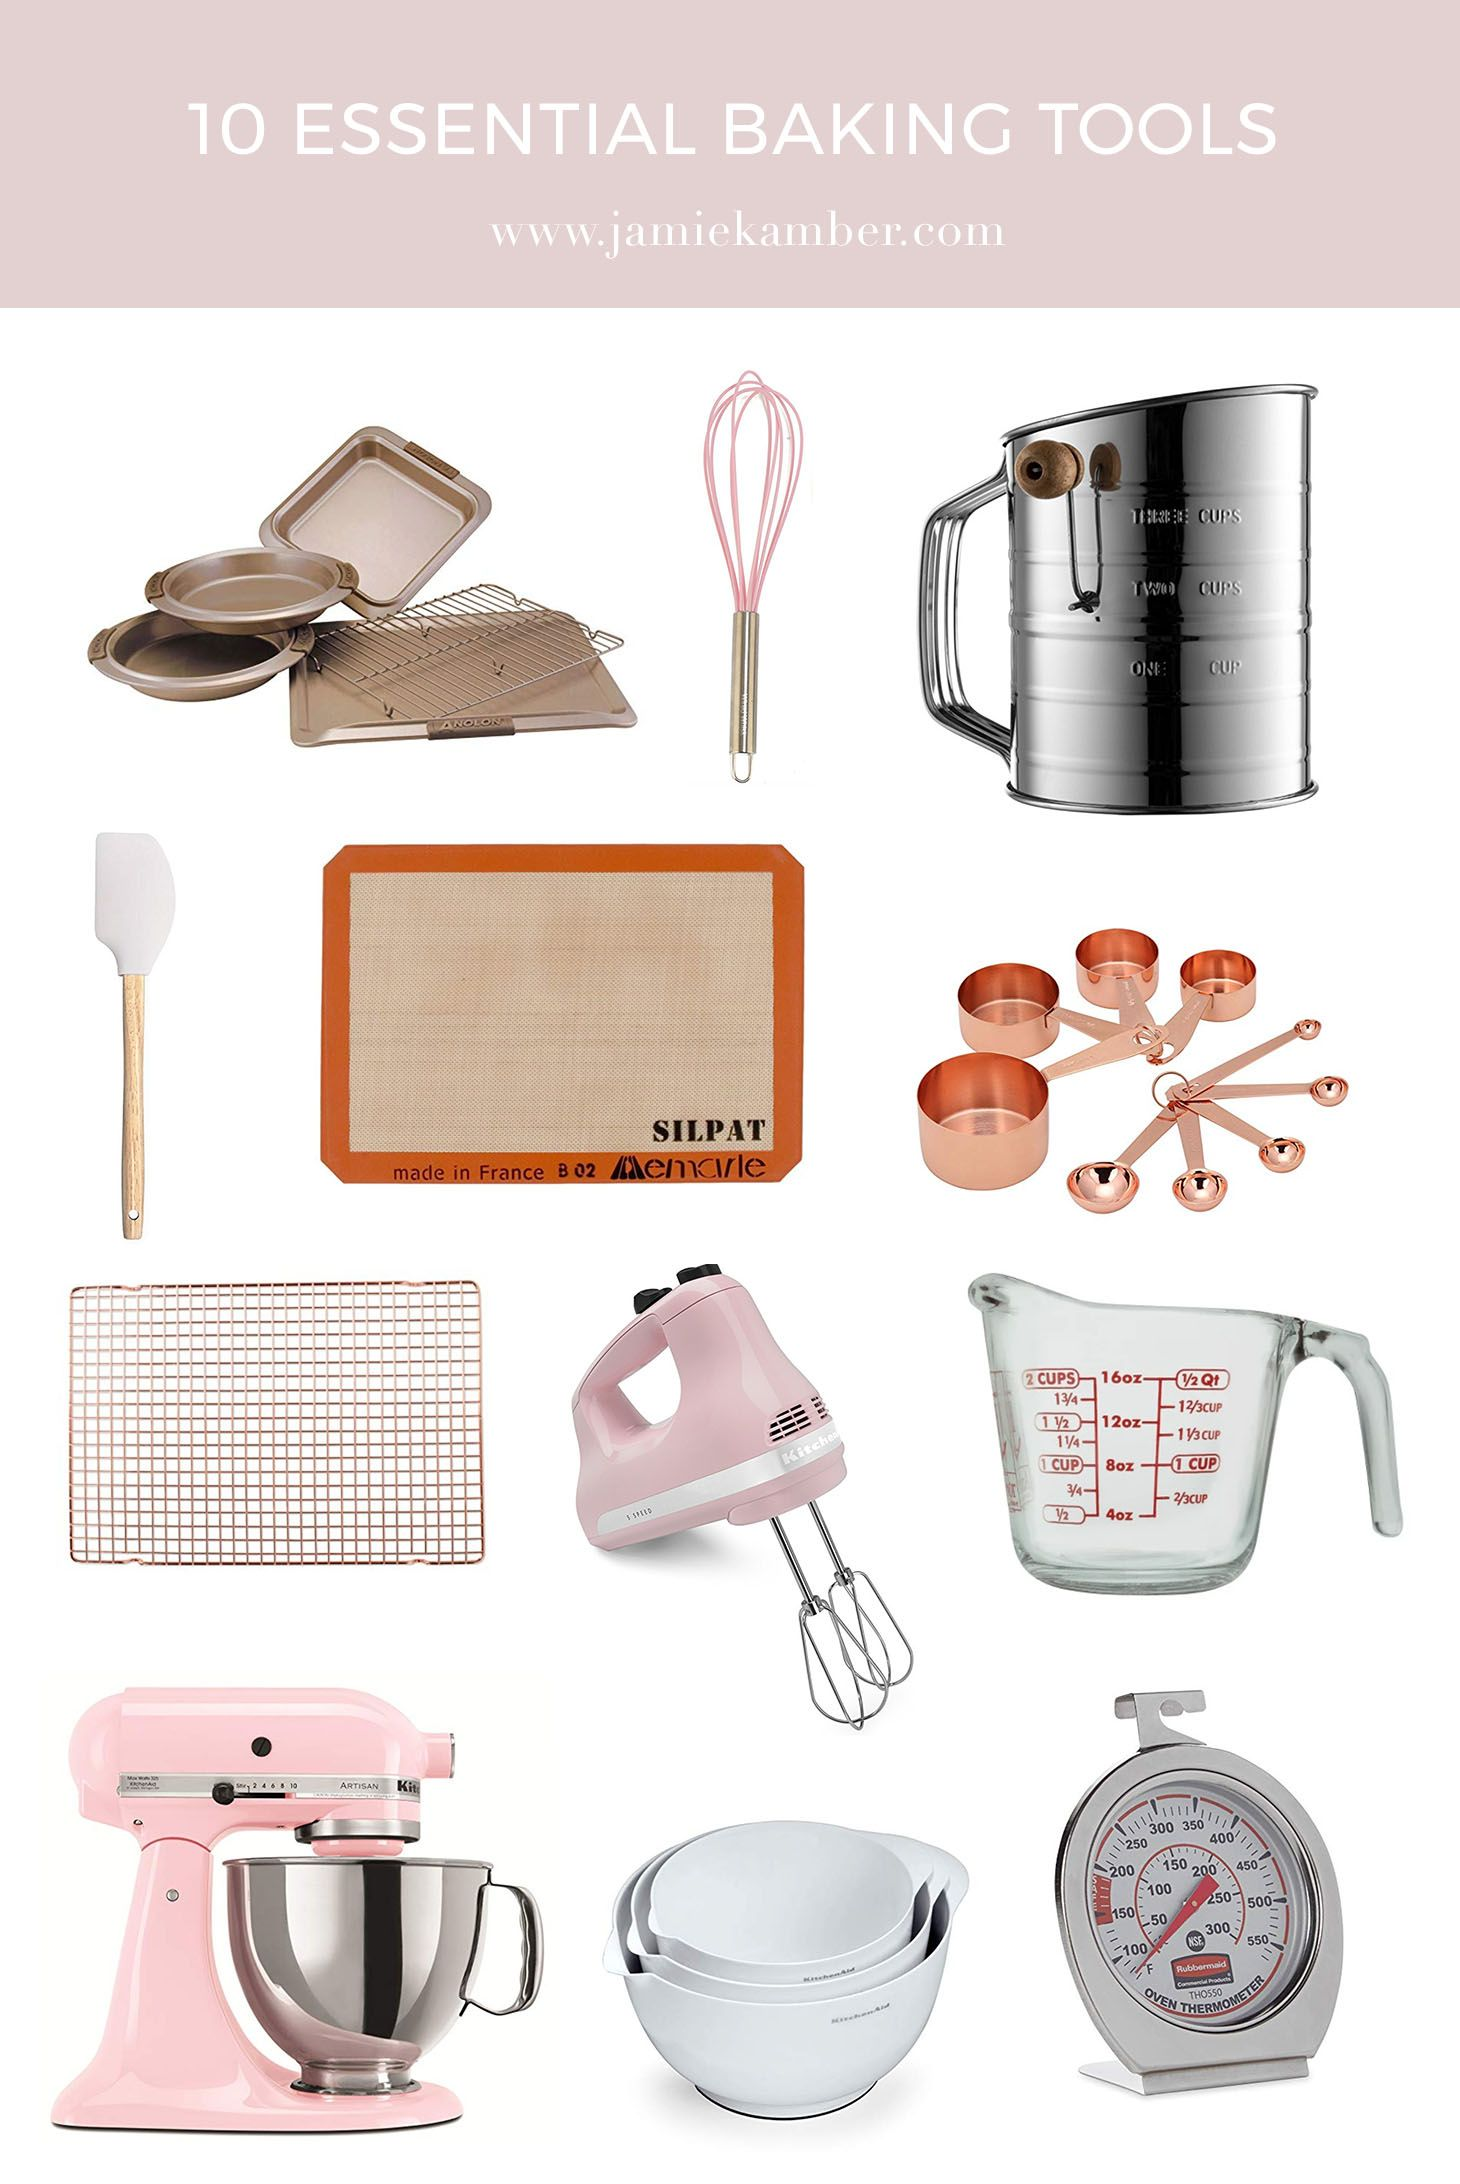 10 Essential Baking Tools For Beginners Baking Tools Baking For